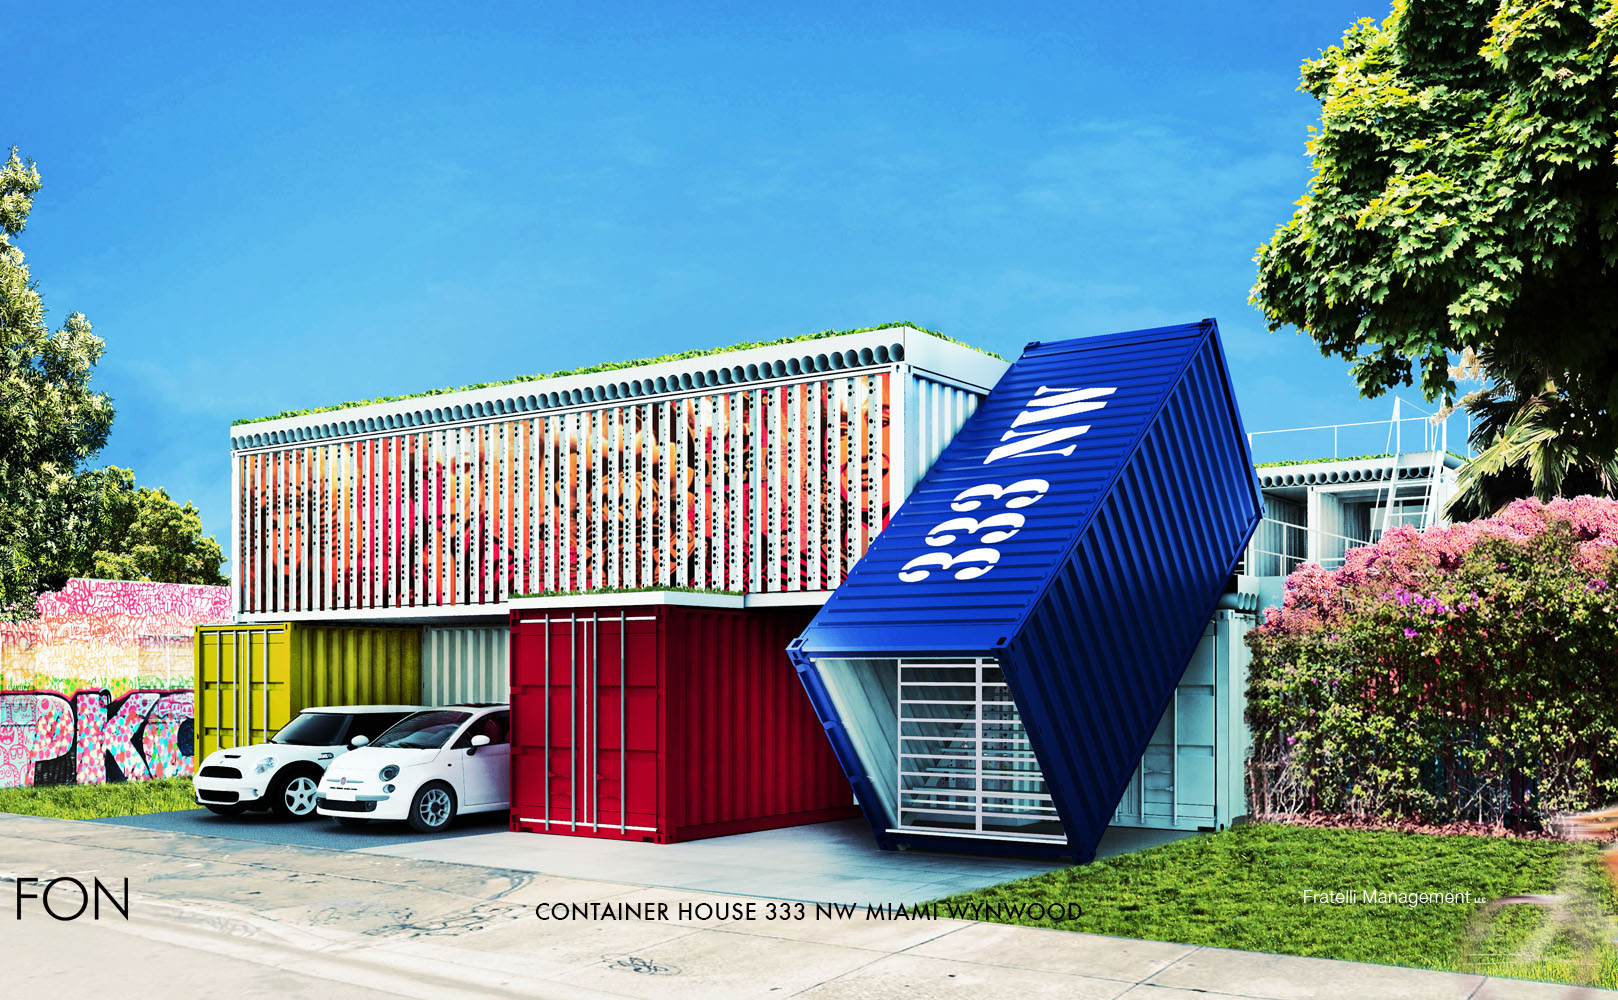 CONTAINER HOUSE 333 NW MIAMI WYNWOOD